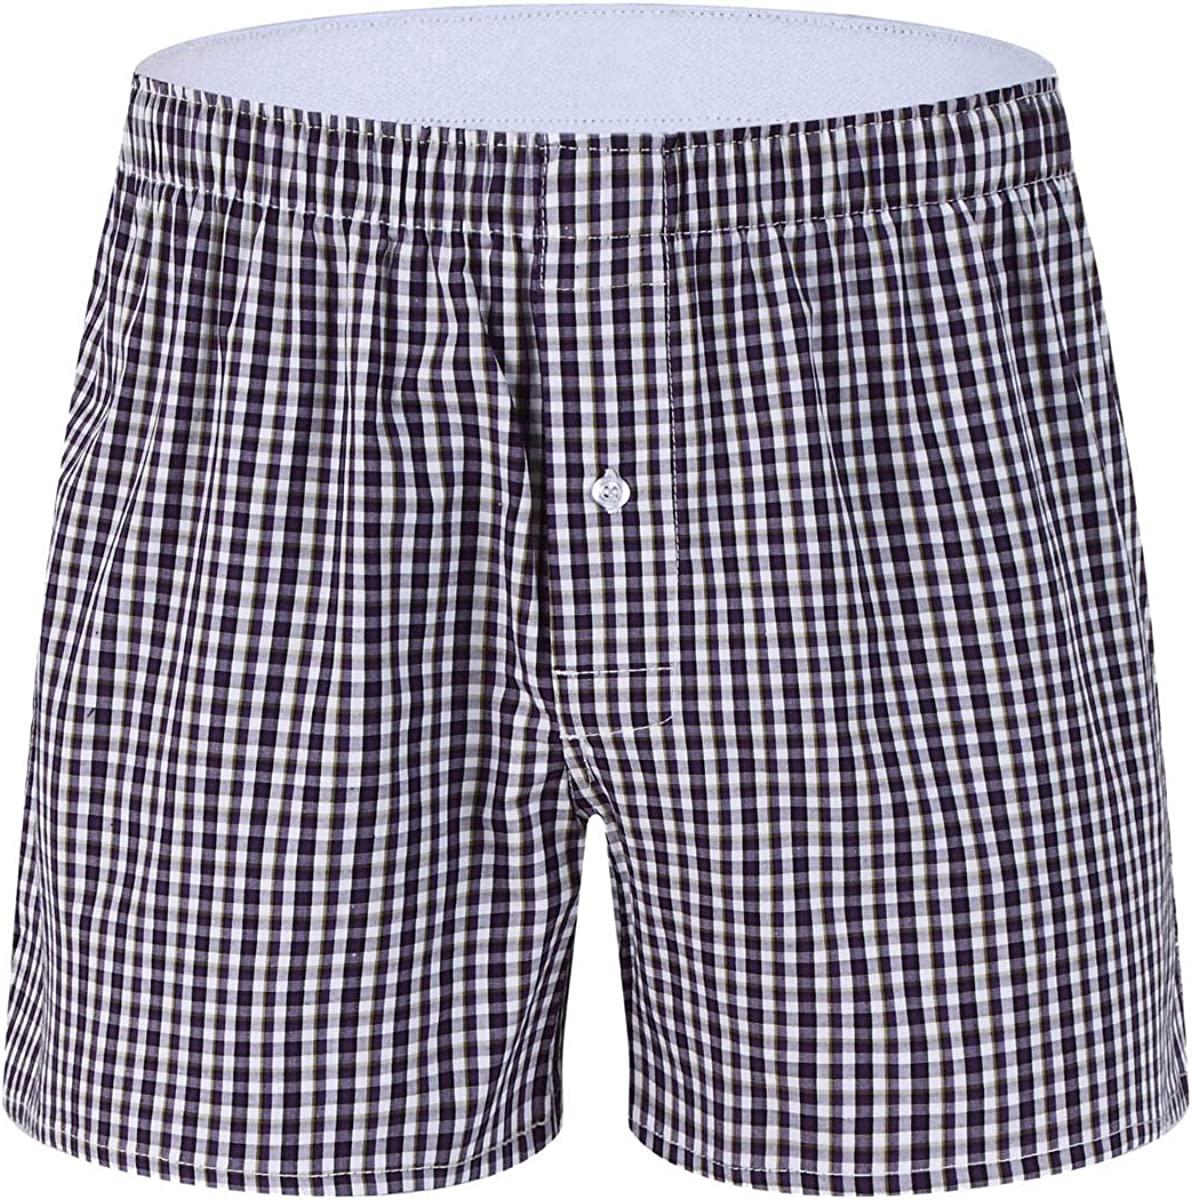 M MOACC Mens Woven Boxers Underwear 100/% Cotton Premium Quality Shorts